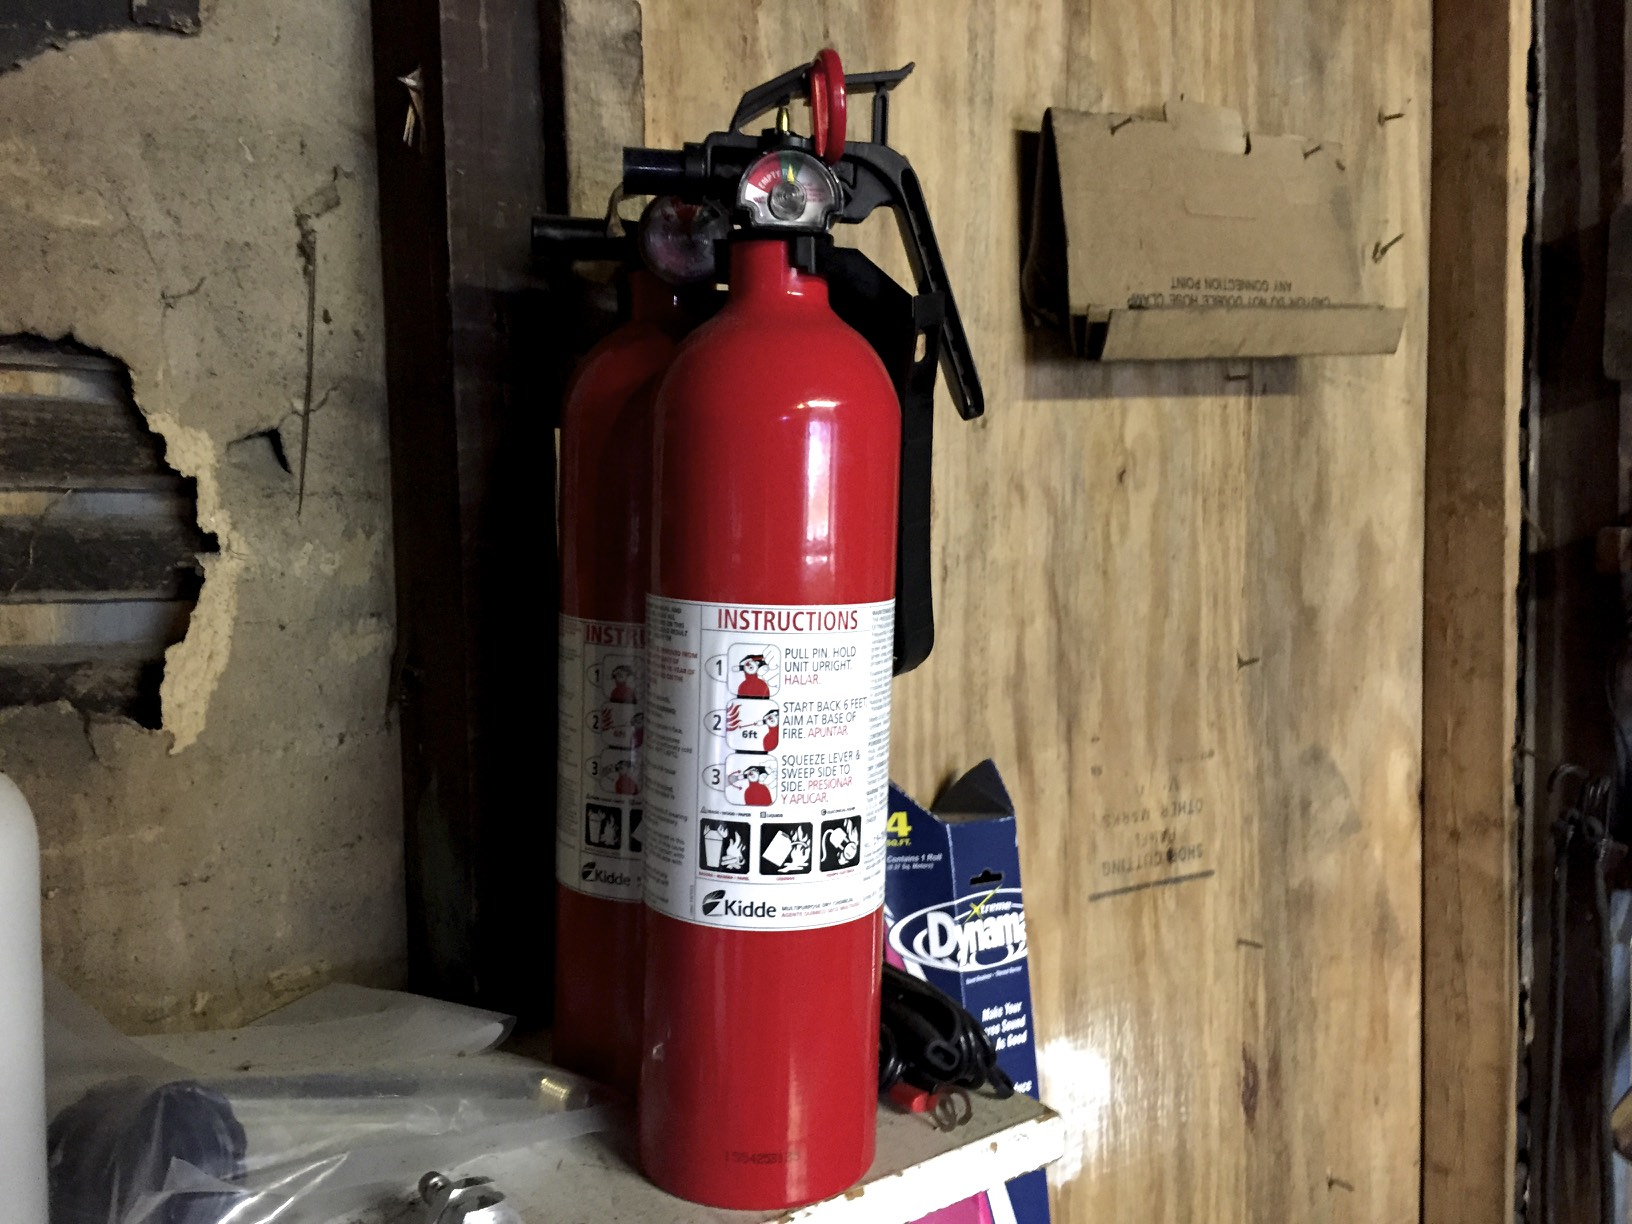 Two fire extinguishers. The one in the back is slightly discharged, so I got a second one to be sure I'm safe.